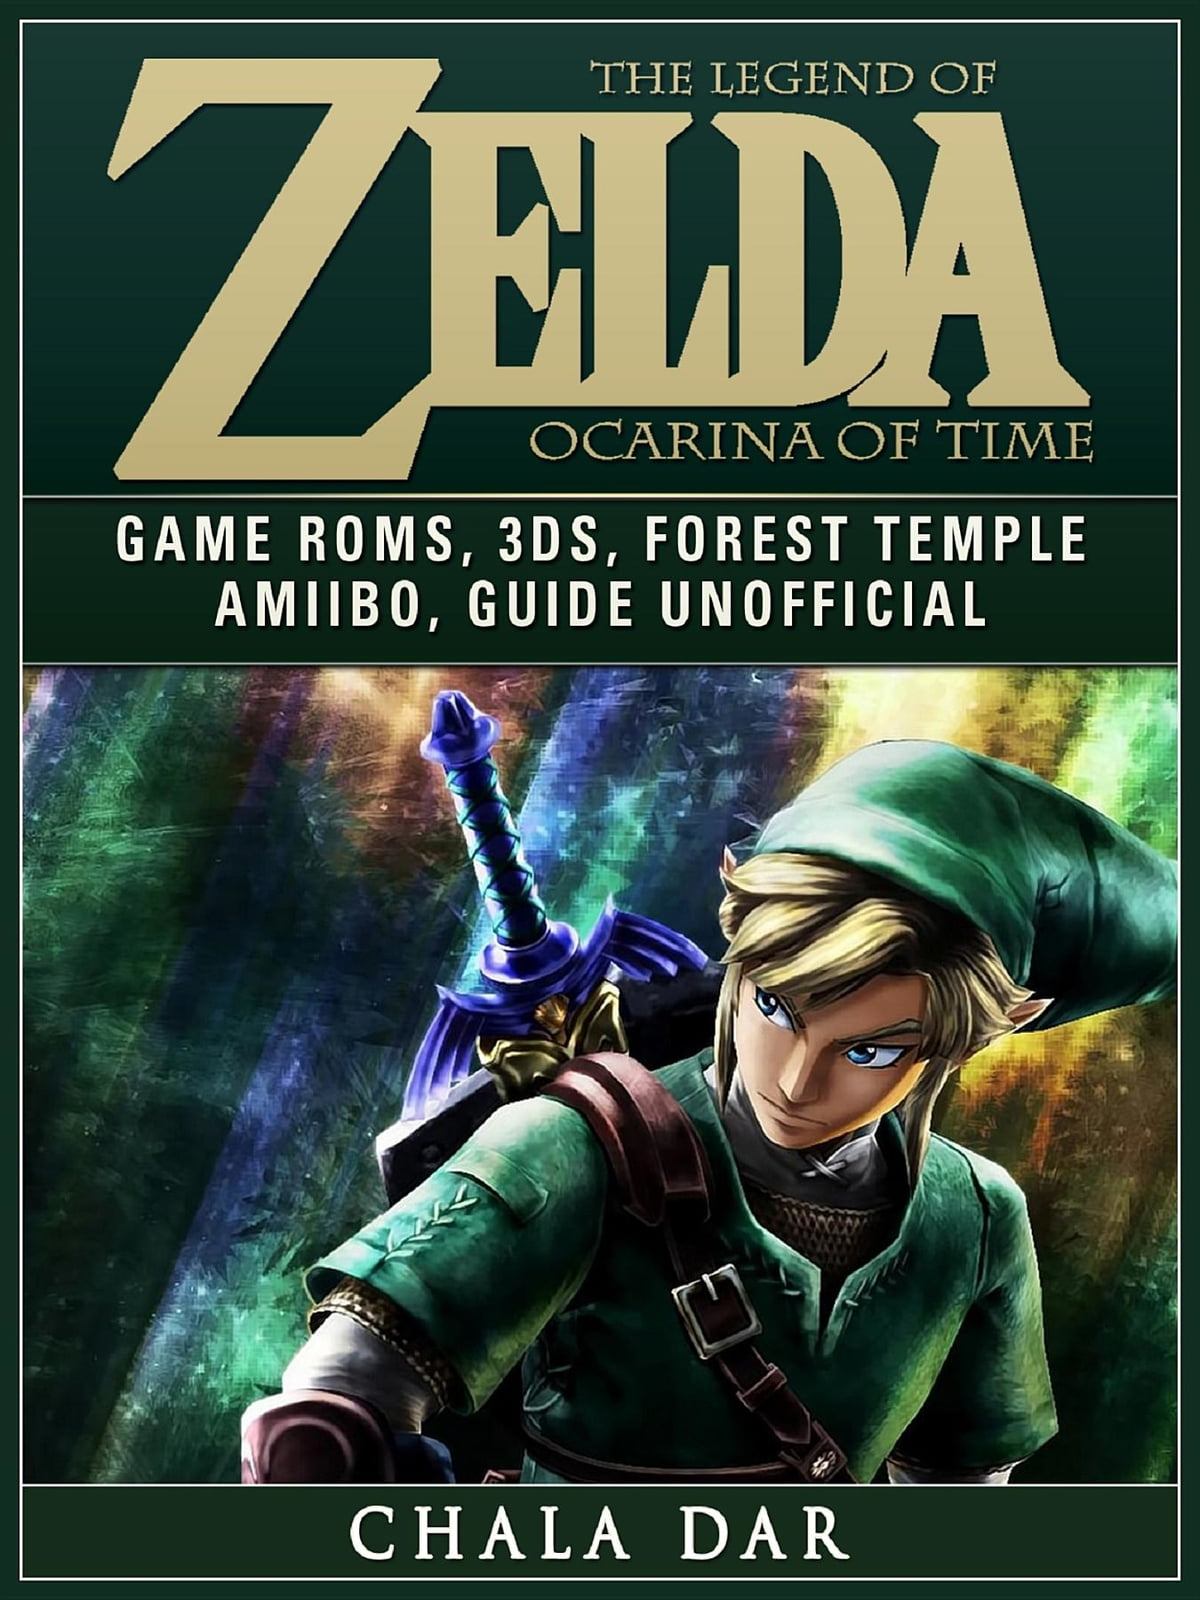 legend of zelda ocarina of time strategy guide 3ds